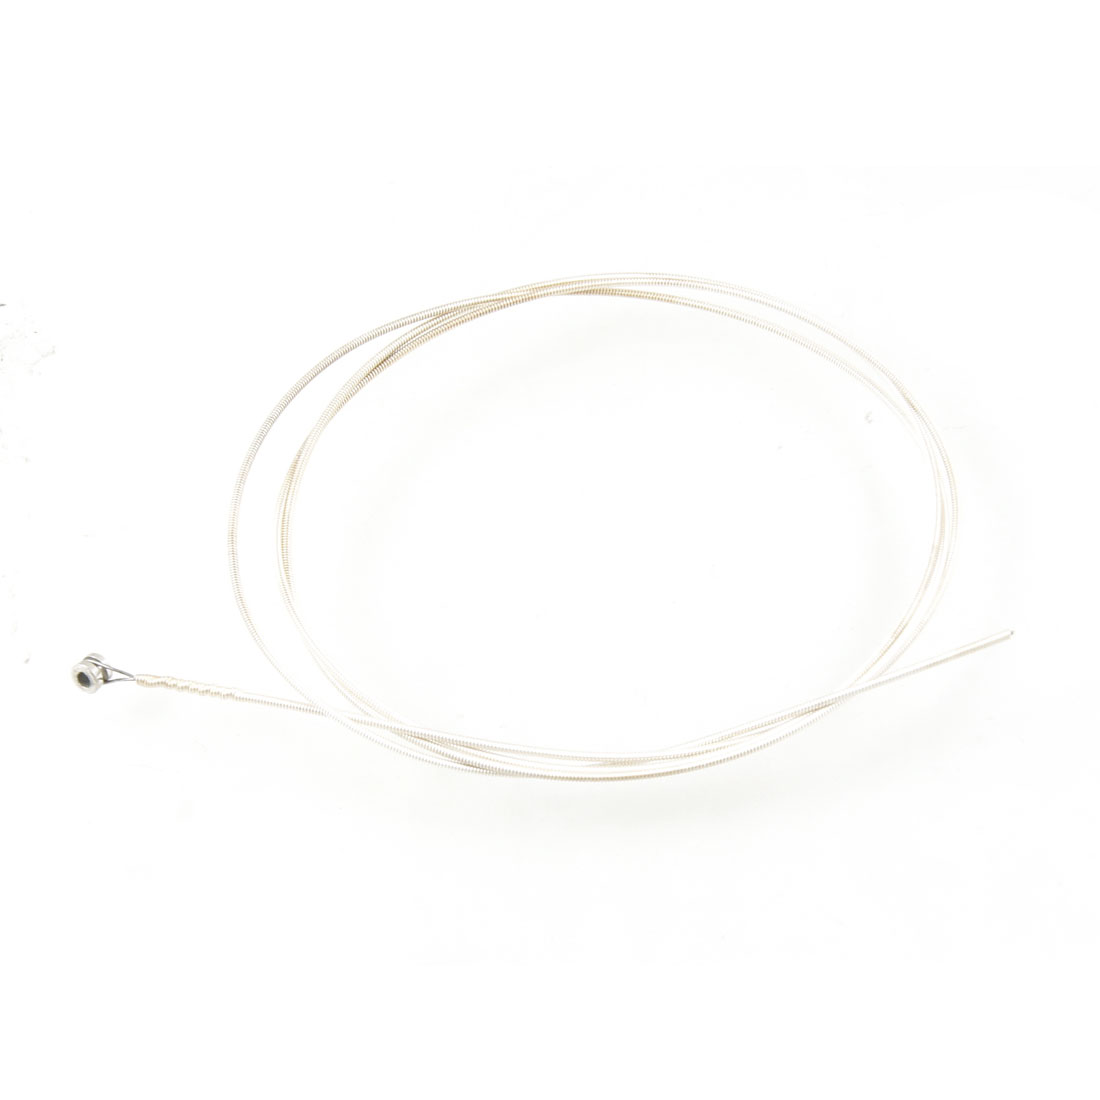 218 E-6 Type Silver Tone Metal Guitar Strings Lines Replacement